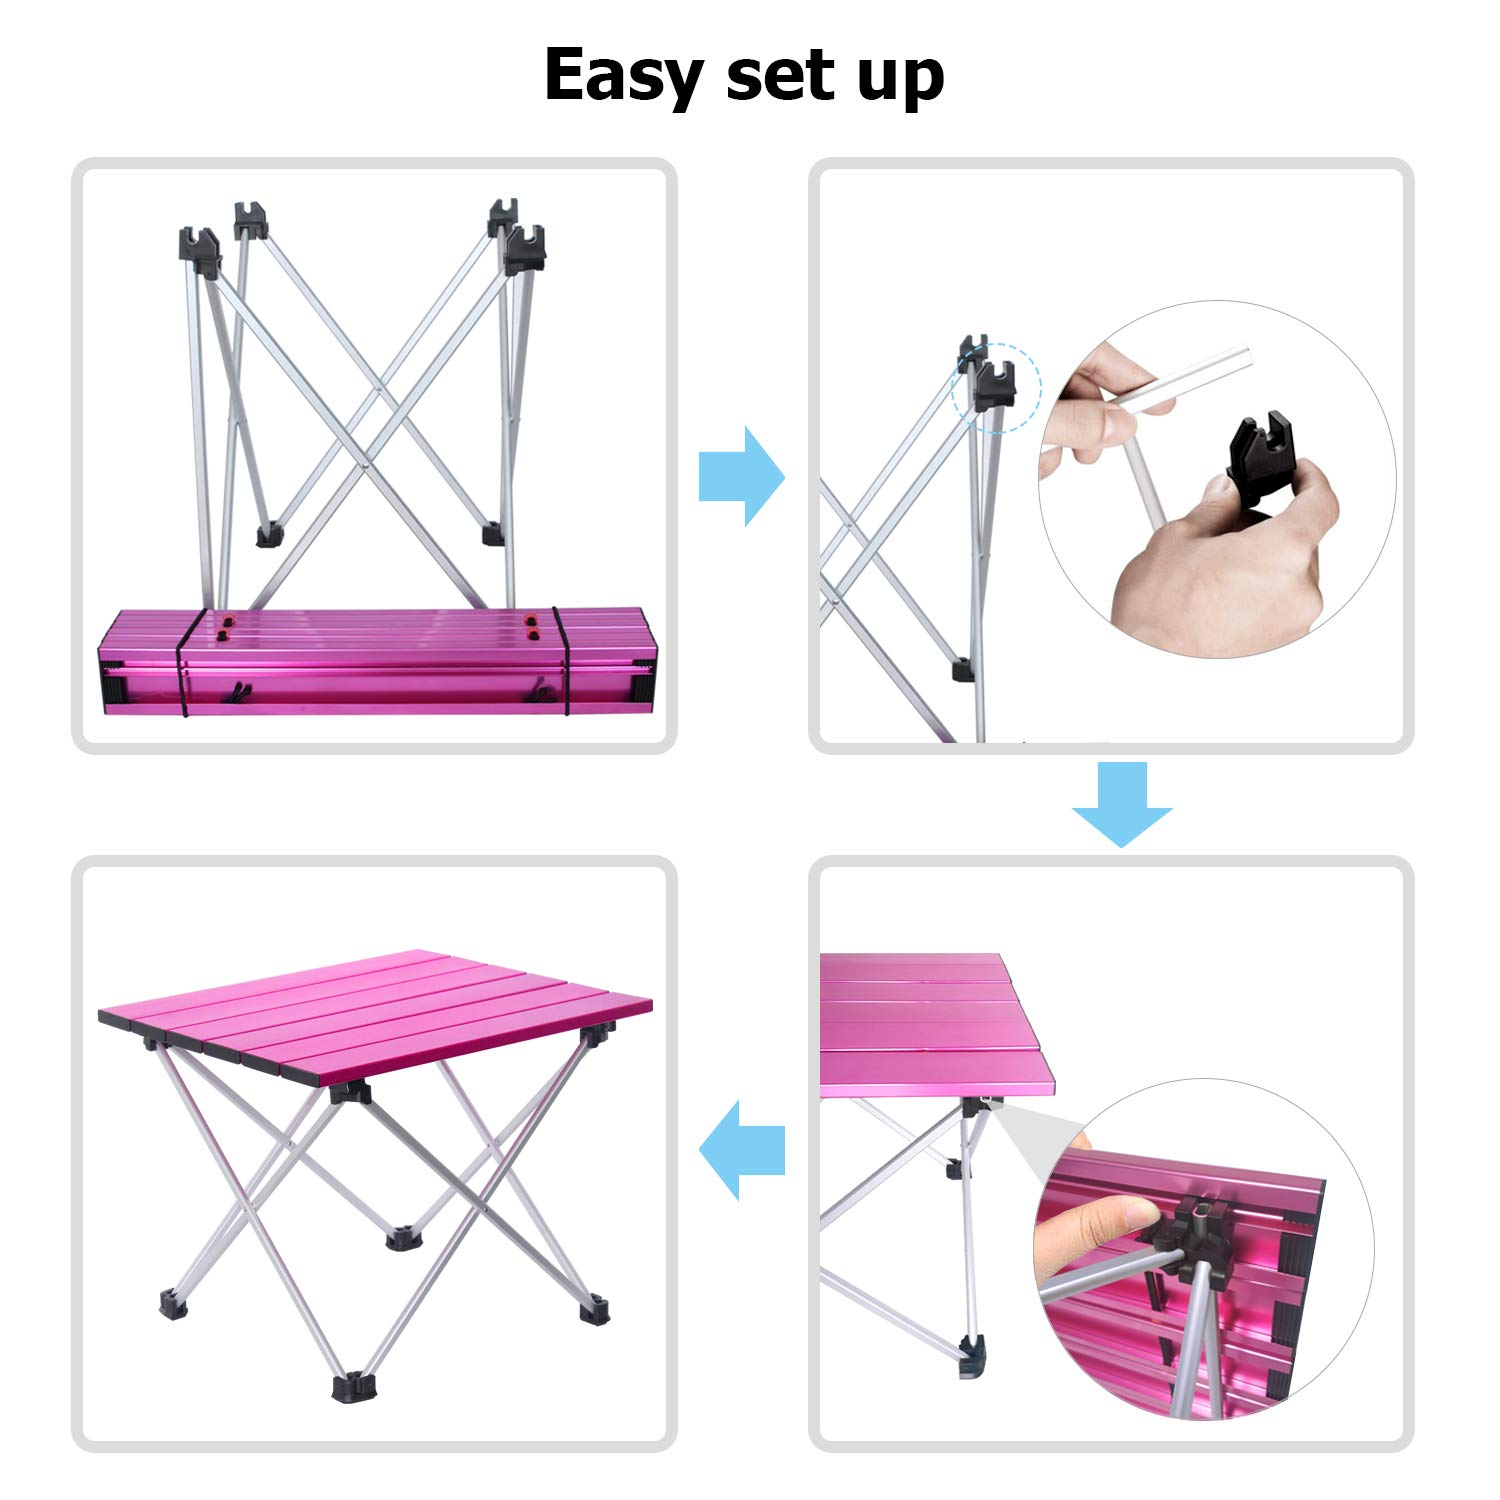 Prefect for Indoor Outdoor Mind and Action Portable Camping Table,Lightweight Folding Table with Aluminum Table Top Fishing BBQ Free Carry Bag Included Hiking Beach Picnic